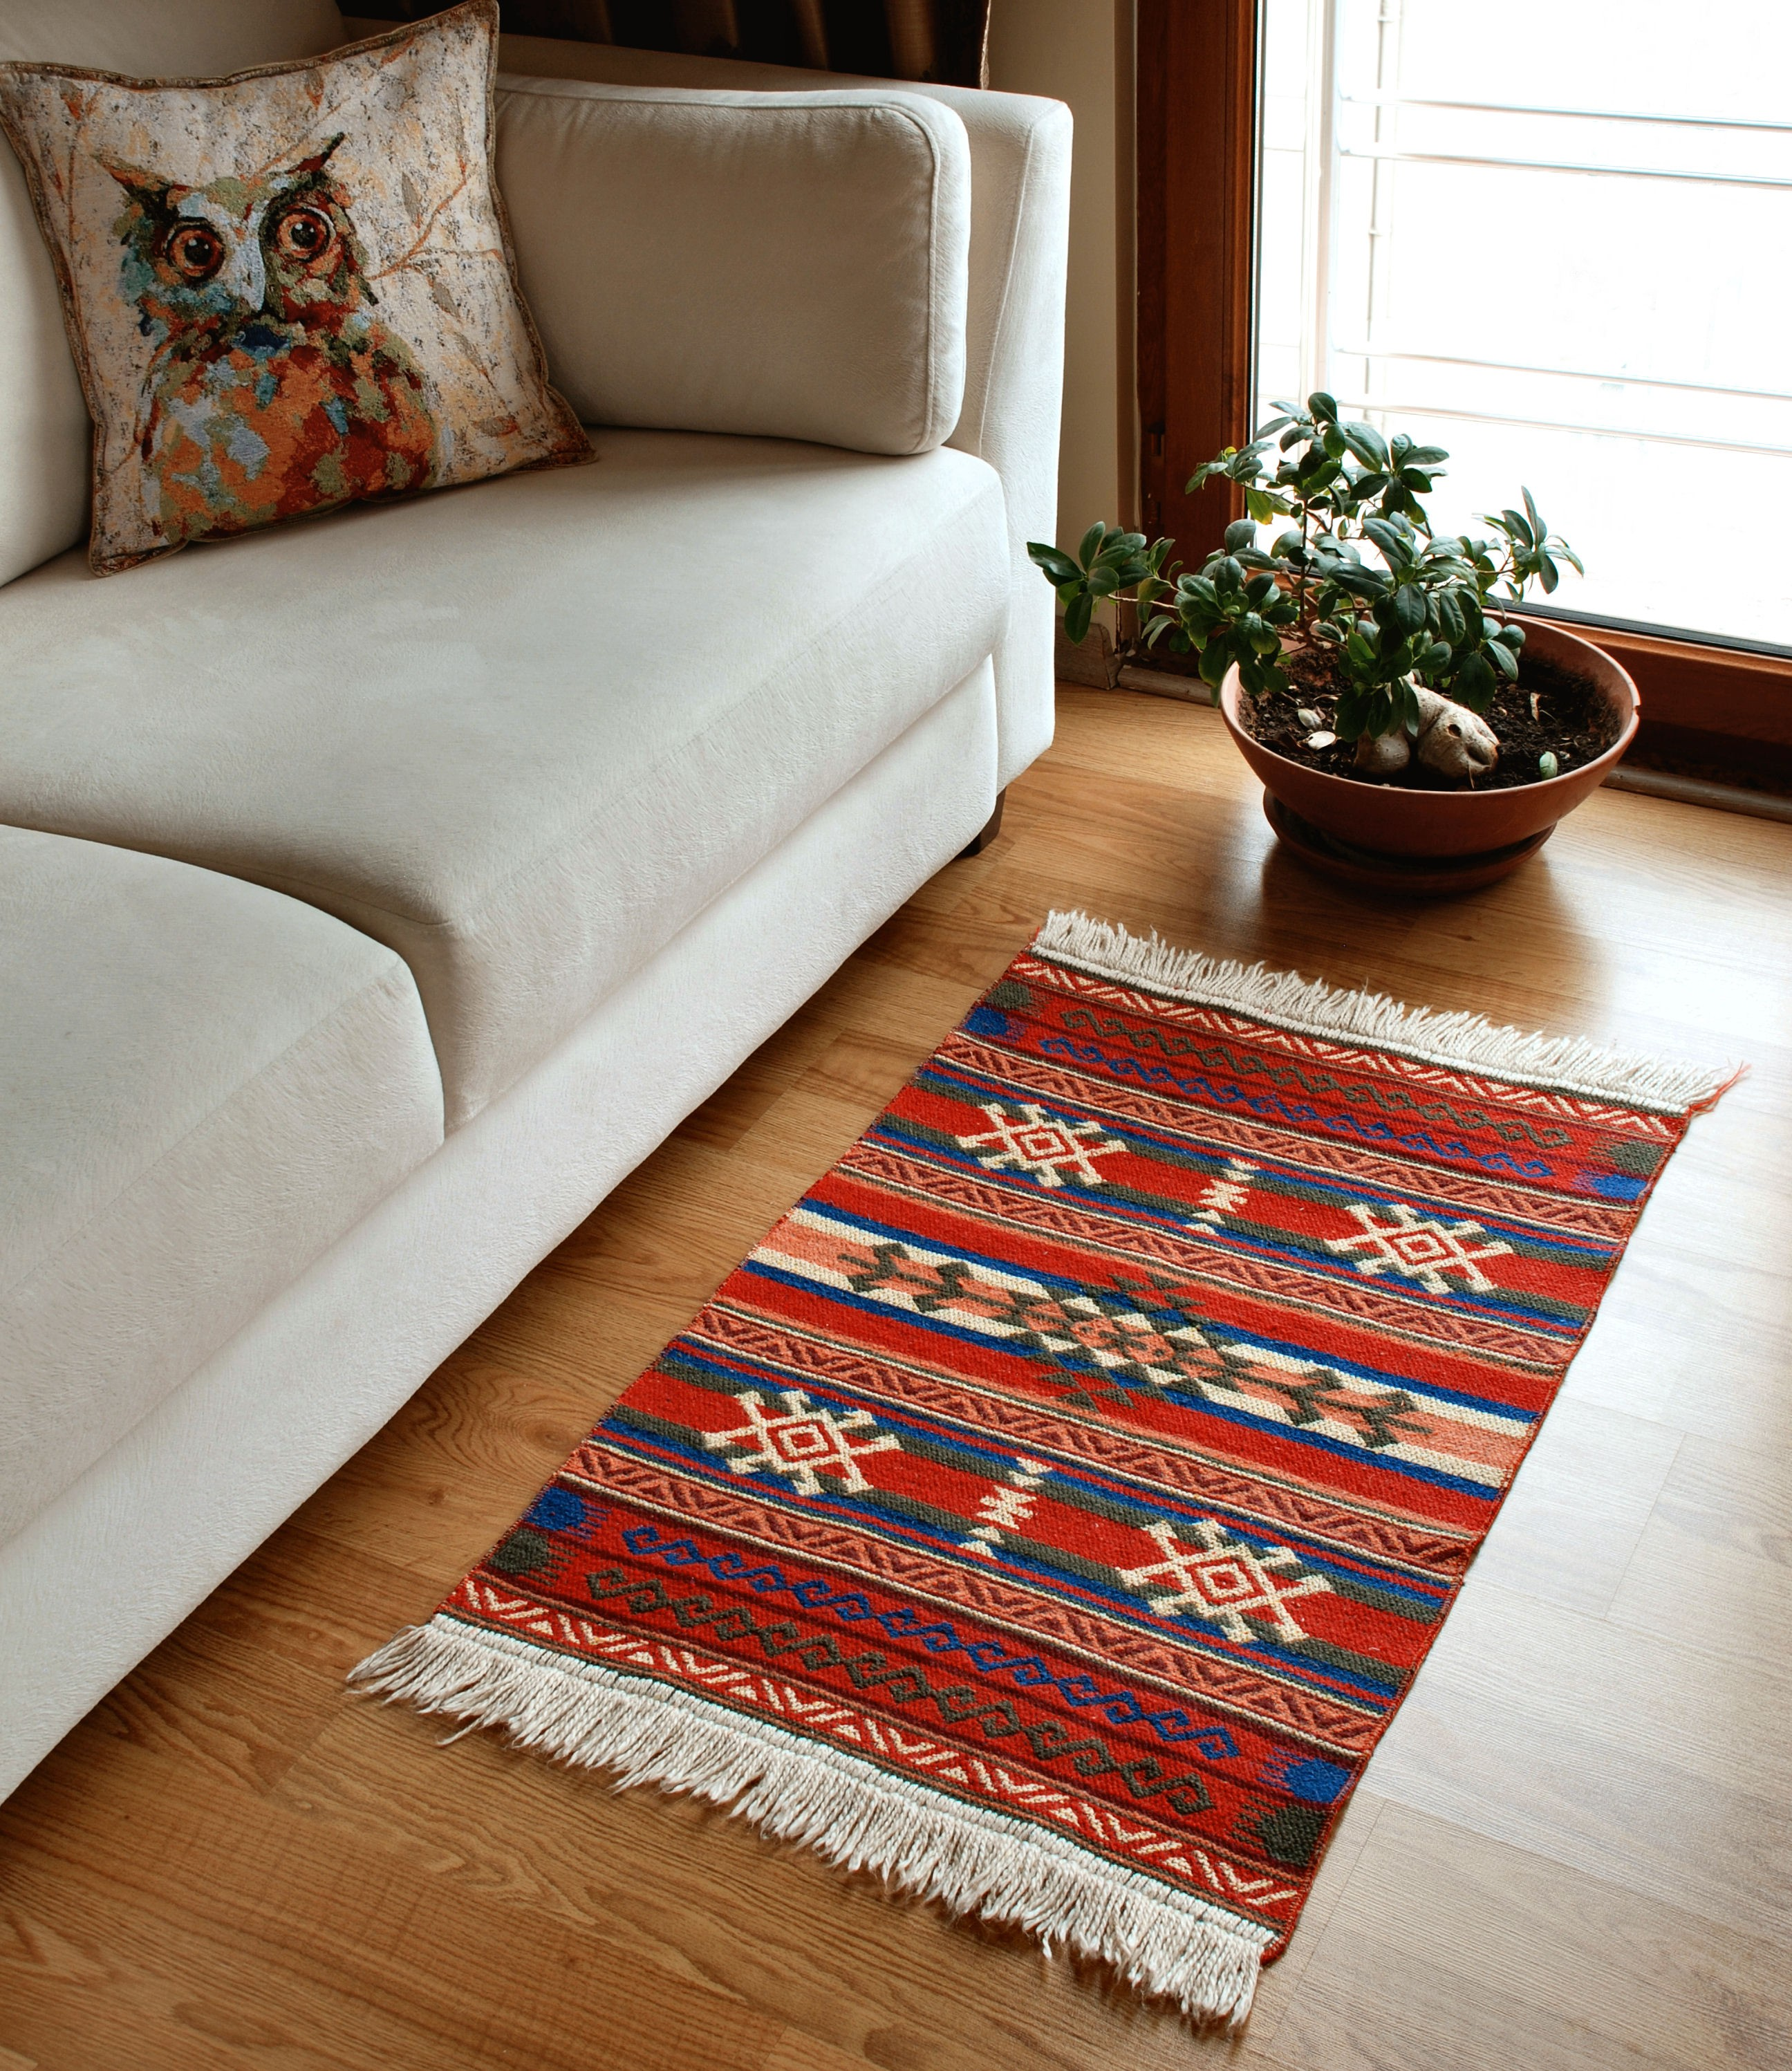 Small Area Rug - Anatolian Series - Red&Green